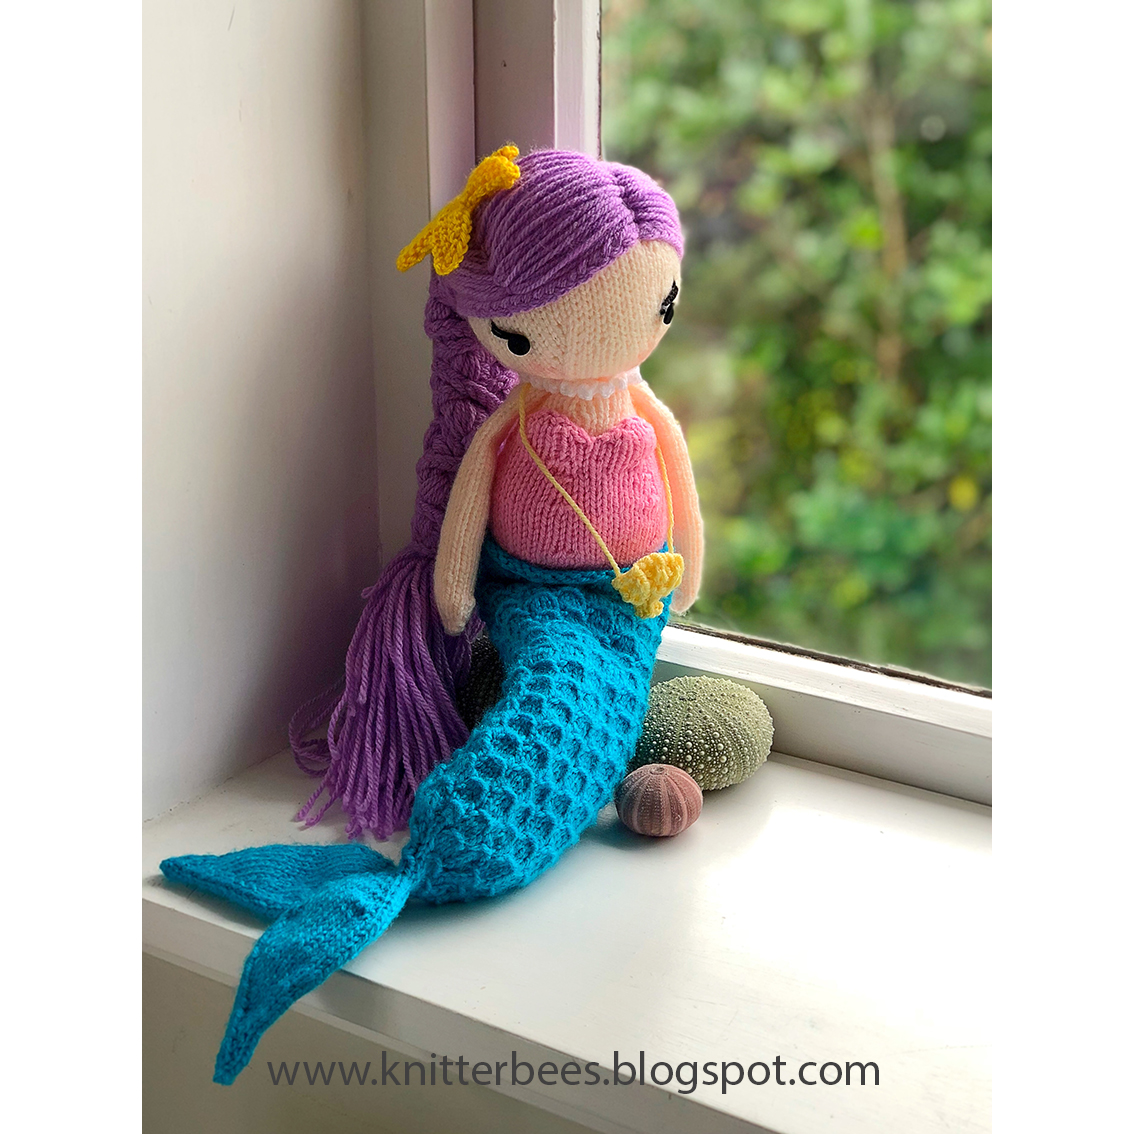 mermaid dolly